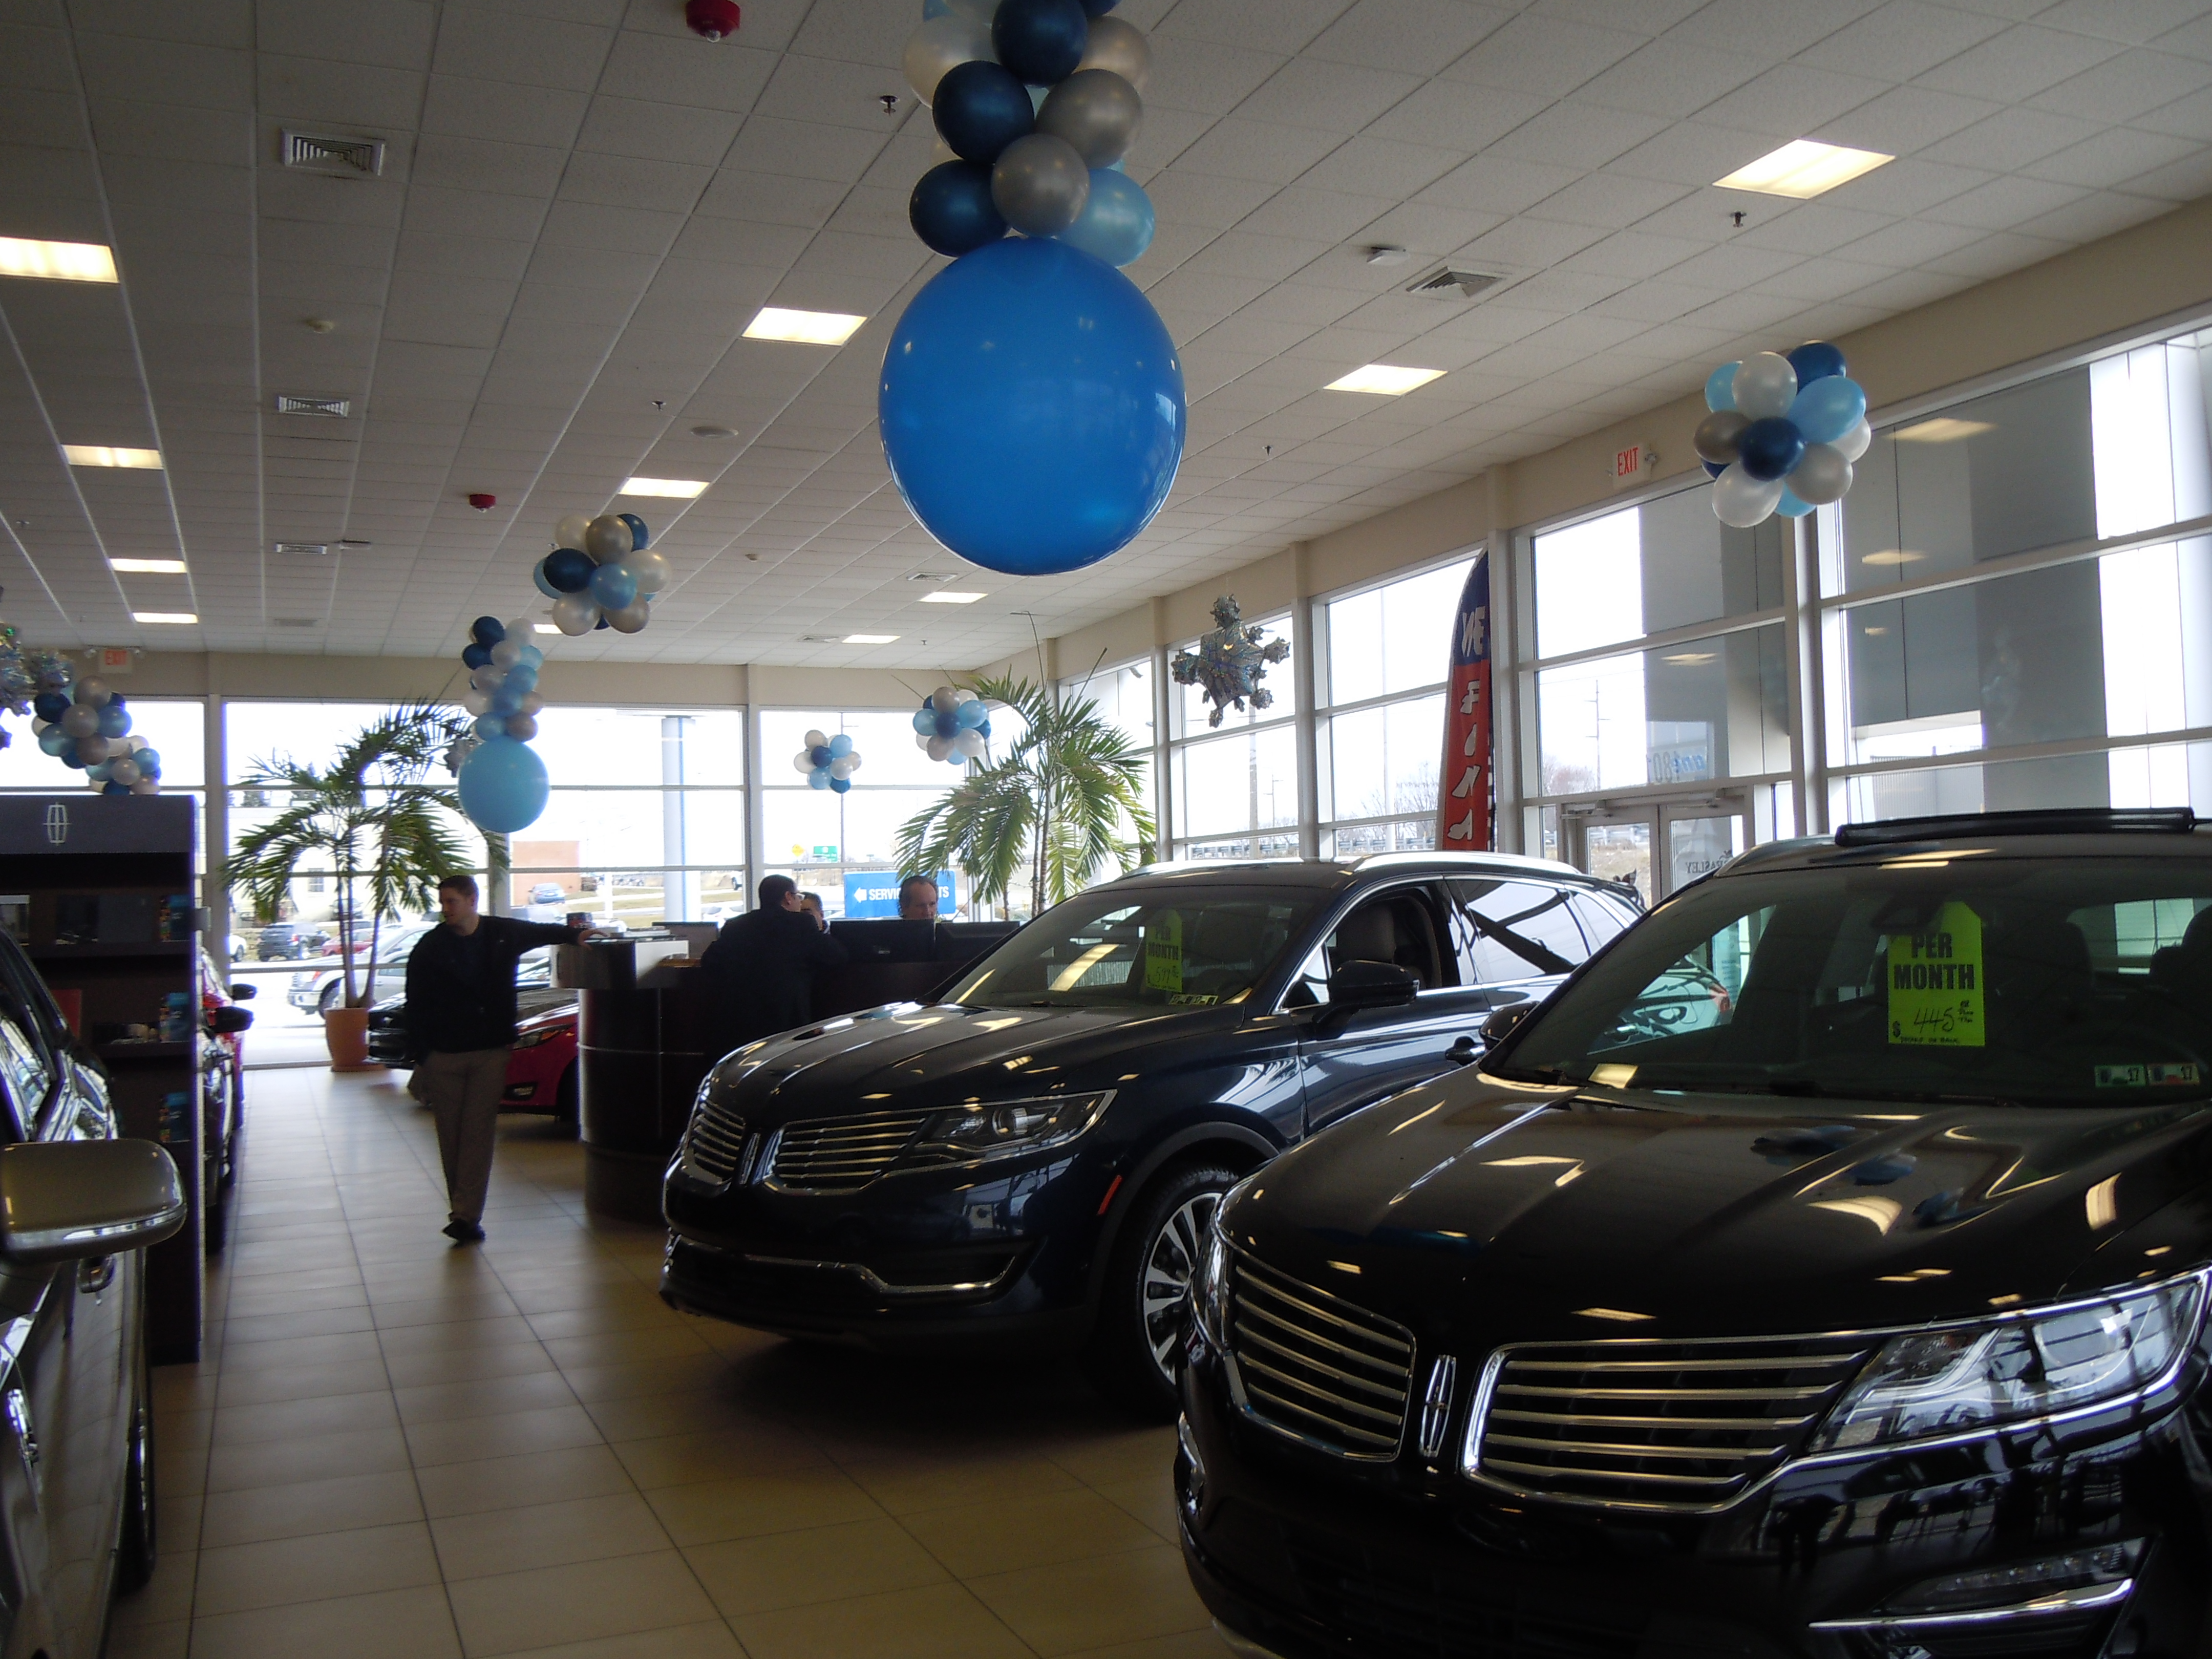 Beasley Ford York Pa >> BEASLEY FORD LINCOLN